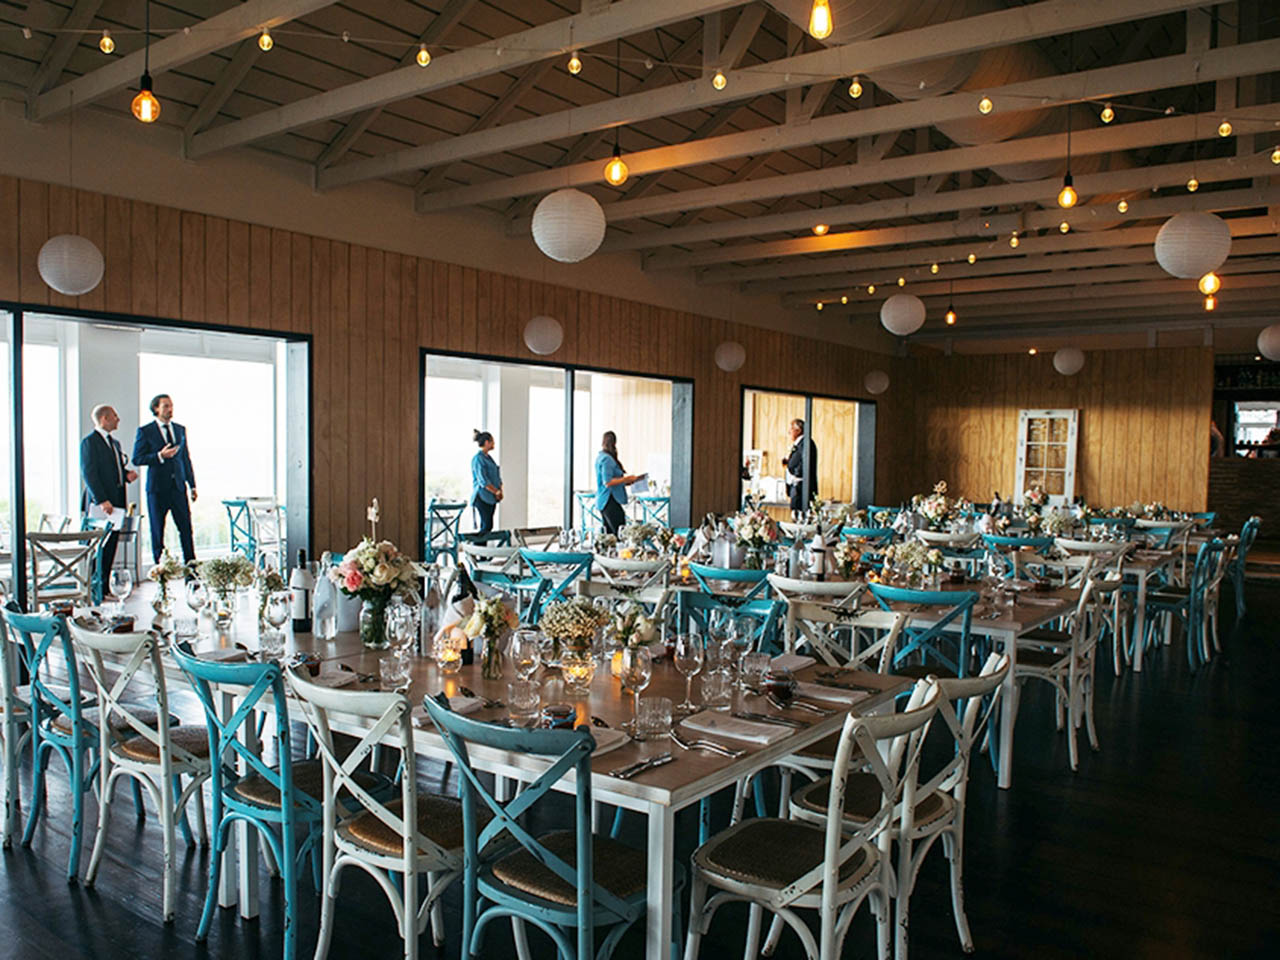 Tables Set Up For A Wedding With Lights And Lanterns at Coast Port Beach Oceanside Venue